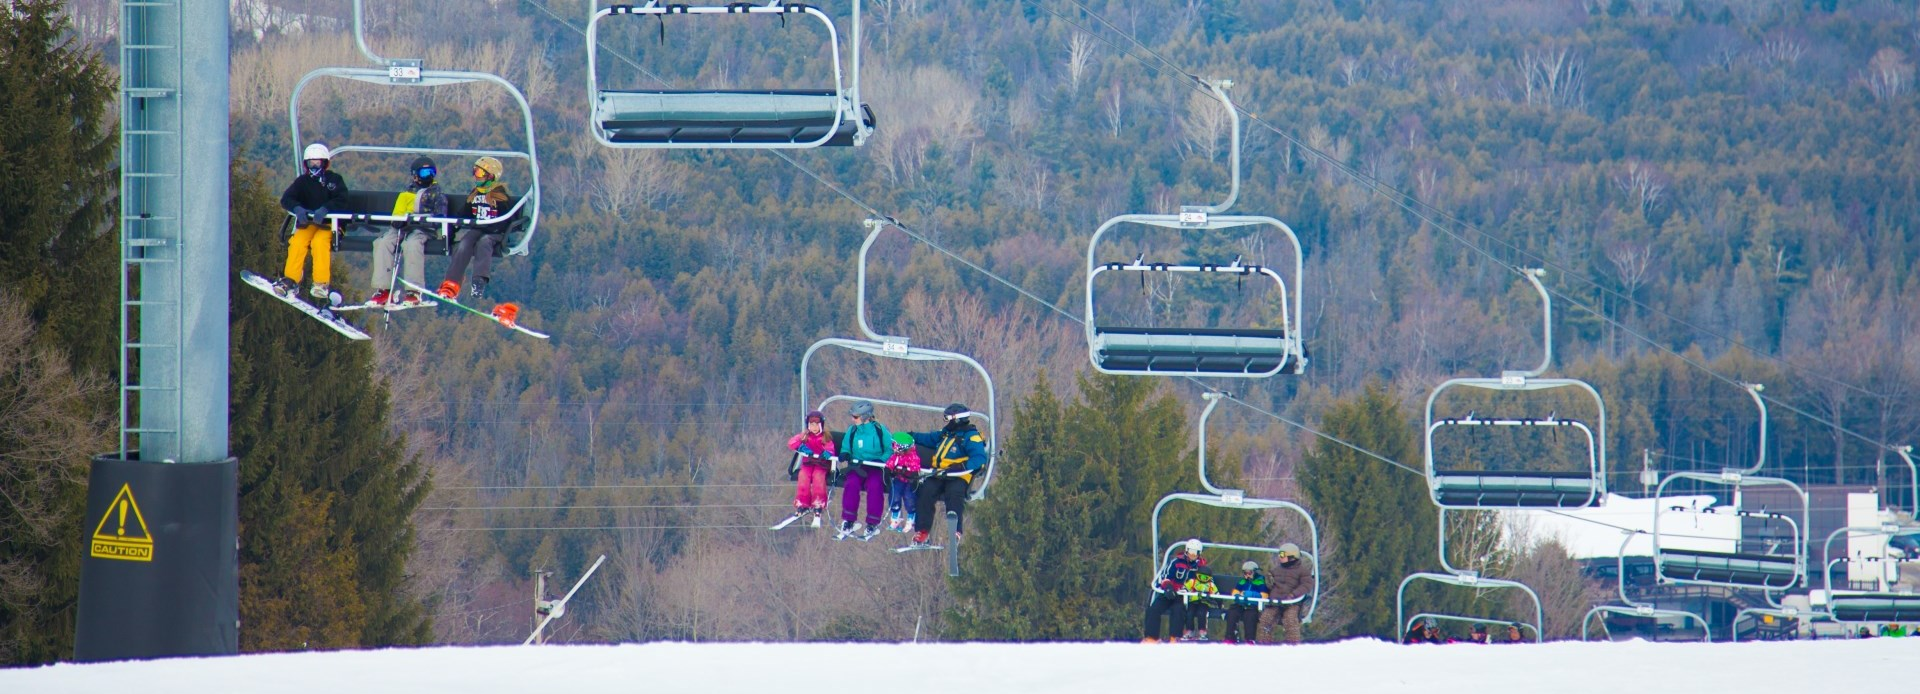 Brimacombe Chair Lift